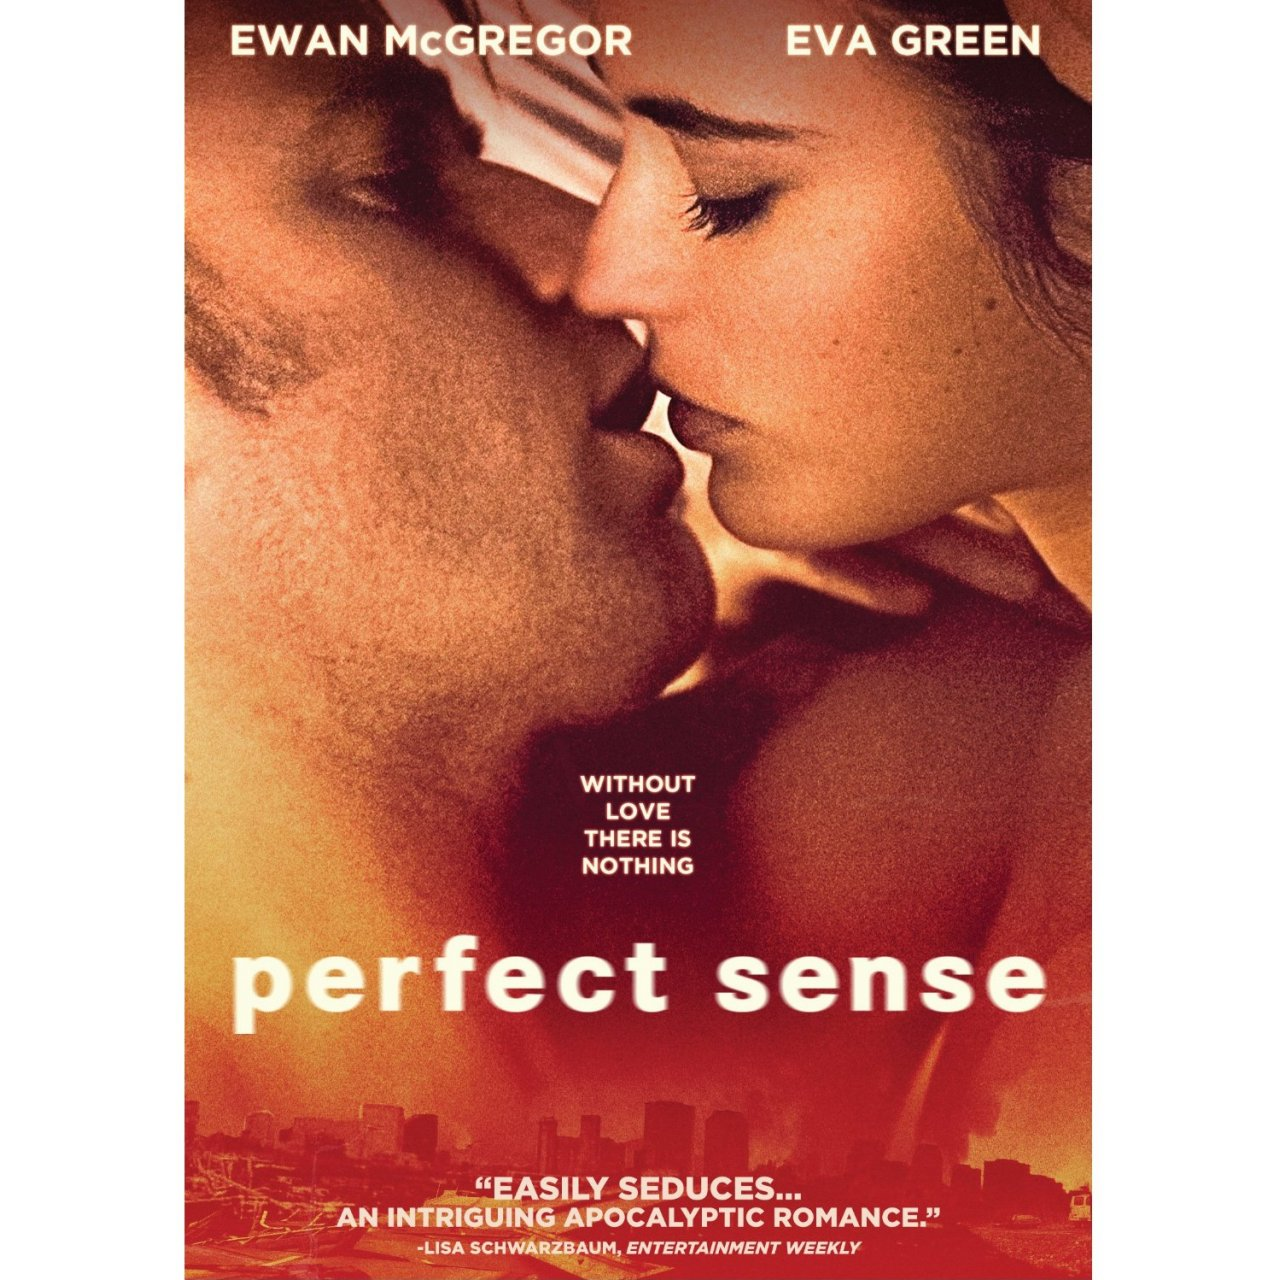 Perfect Sense 2012 Movie in Bluray and DVD